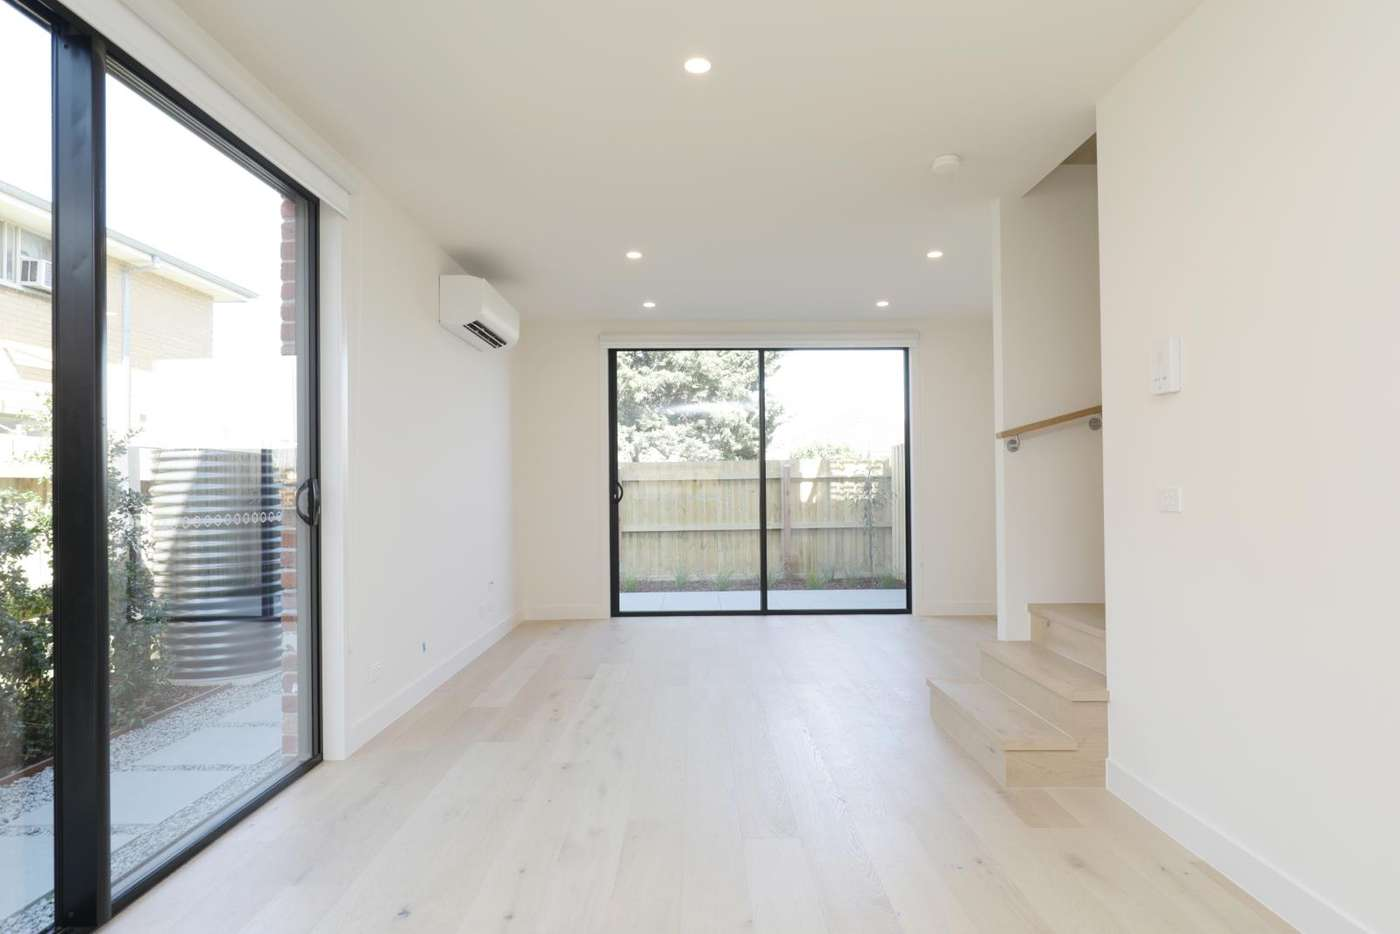 Sixth view of Homely townhouse listing, 19/711 Barkly Street, West Footscray VIC 3012